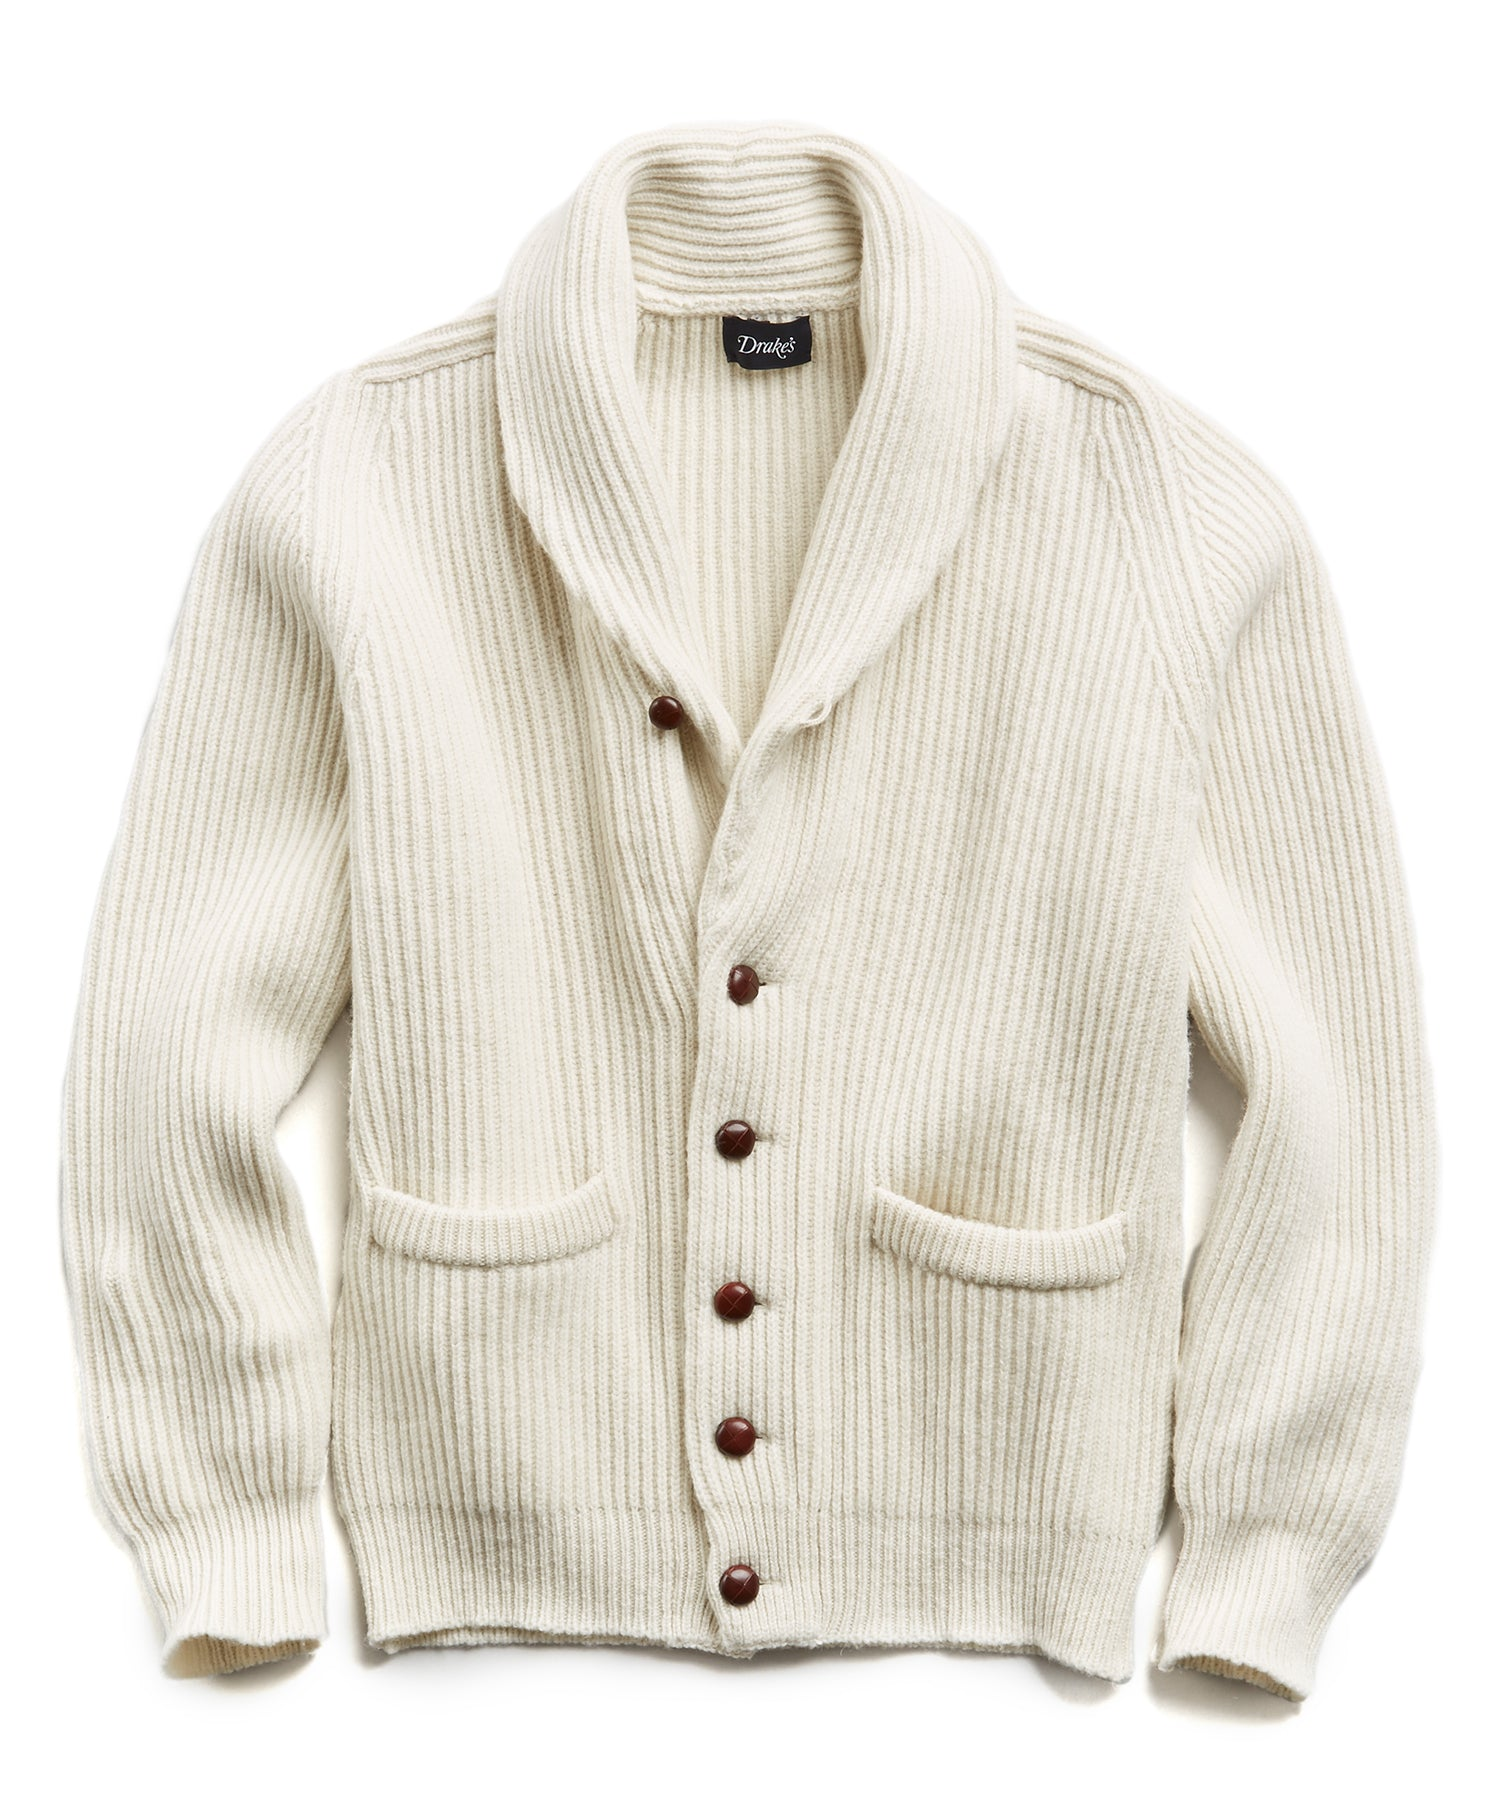 Lambswool Shawl Collar Cardigan in Cream